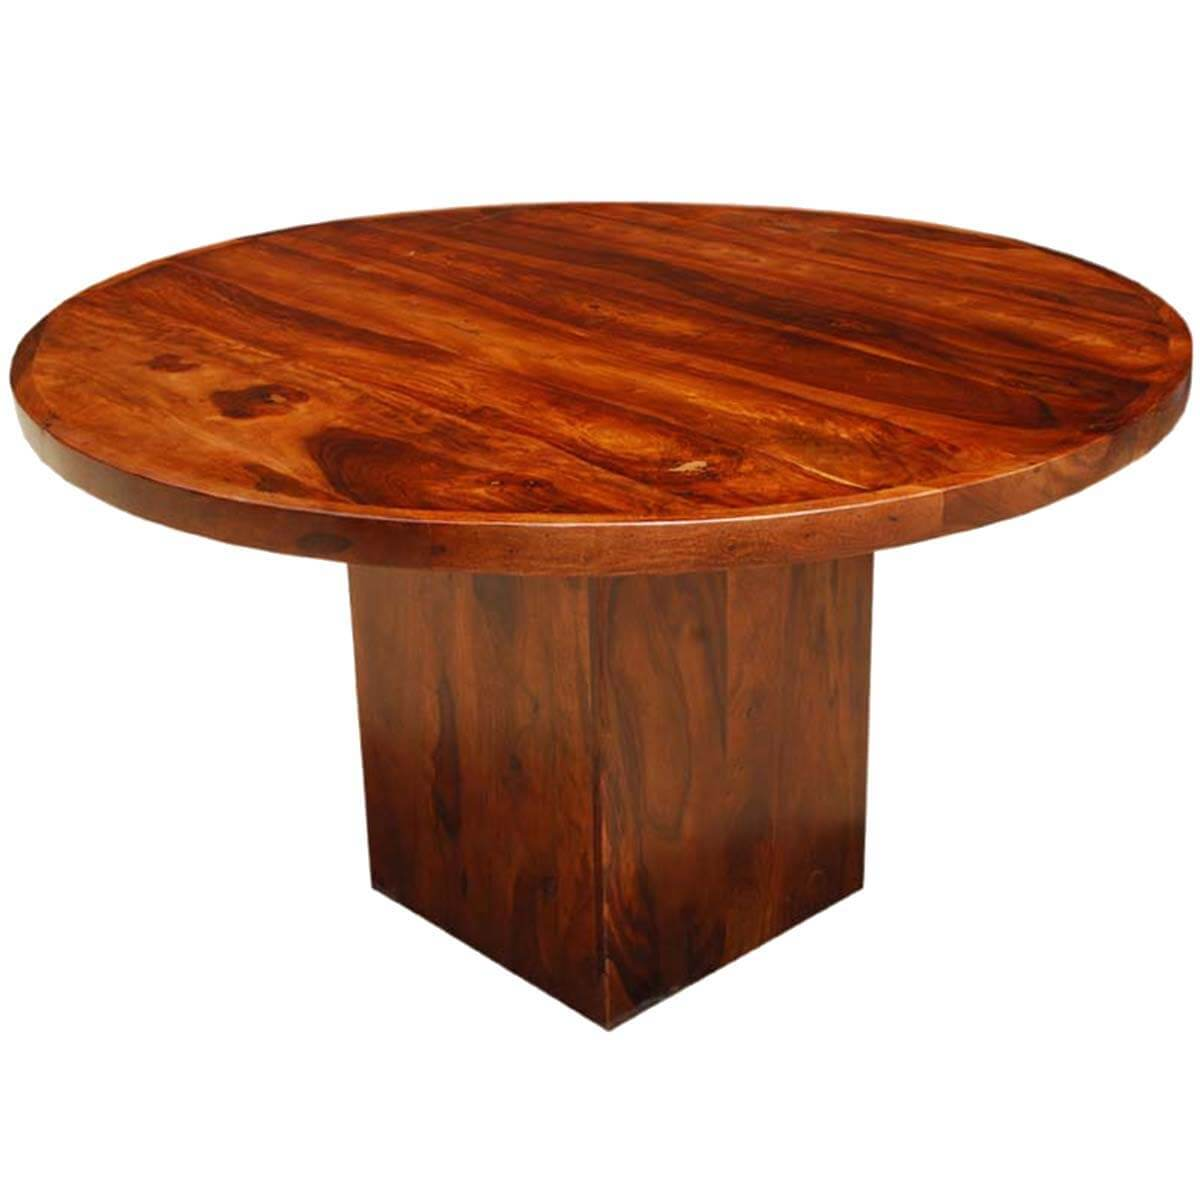 Solid wood rustic round dining table w square pedestal for Breakfast table